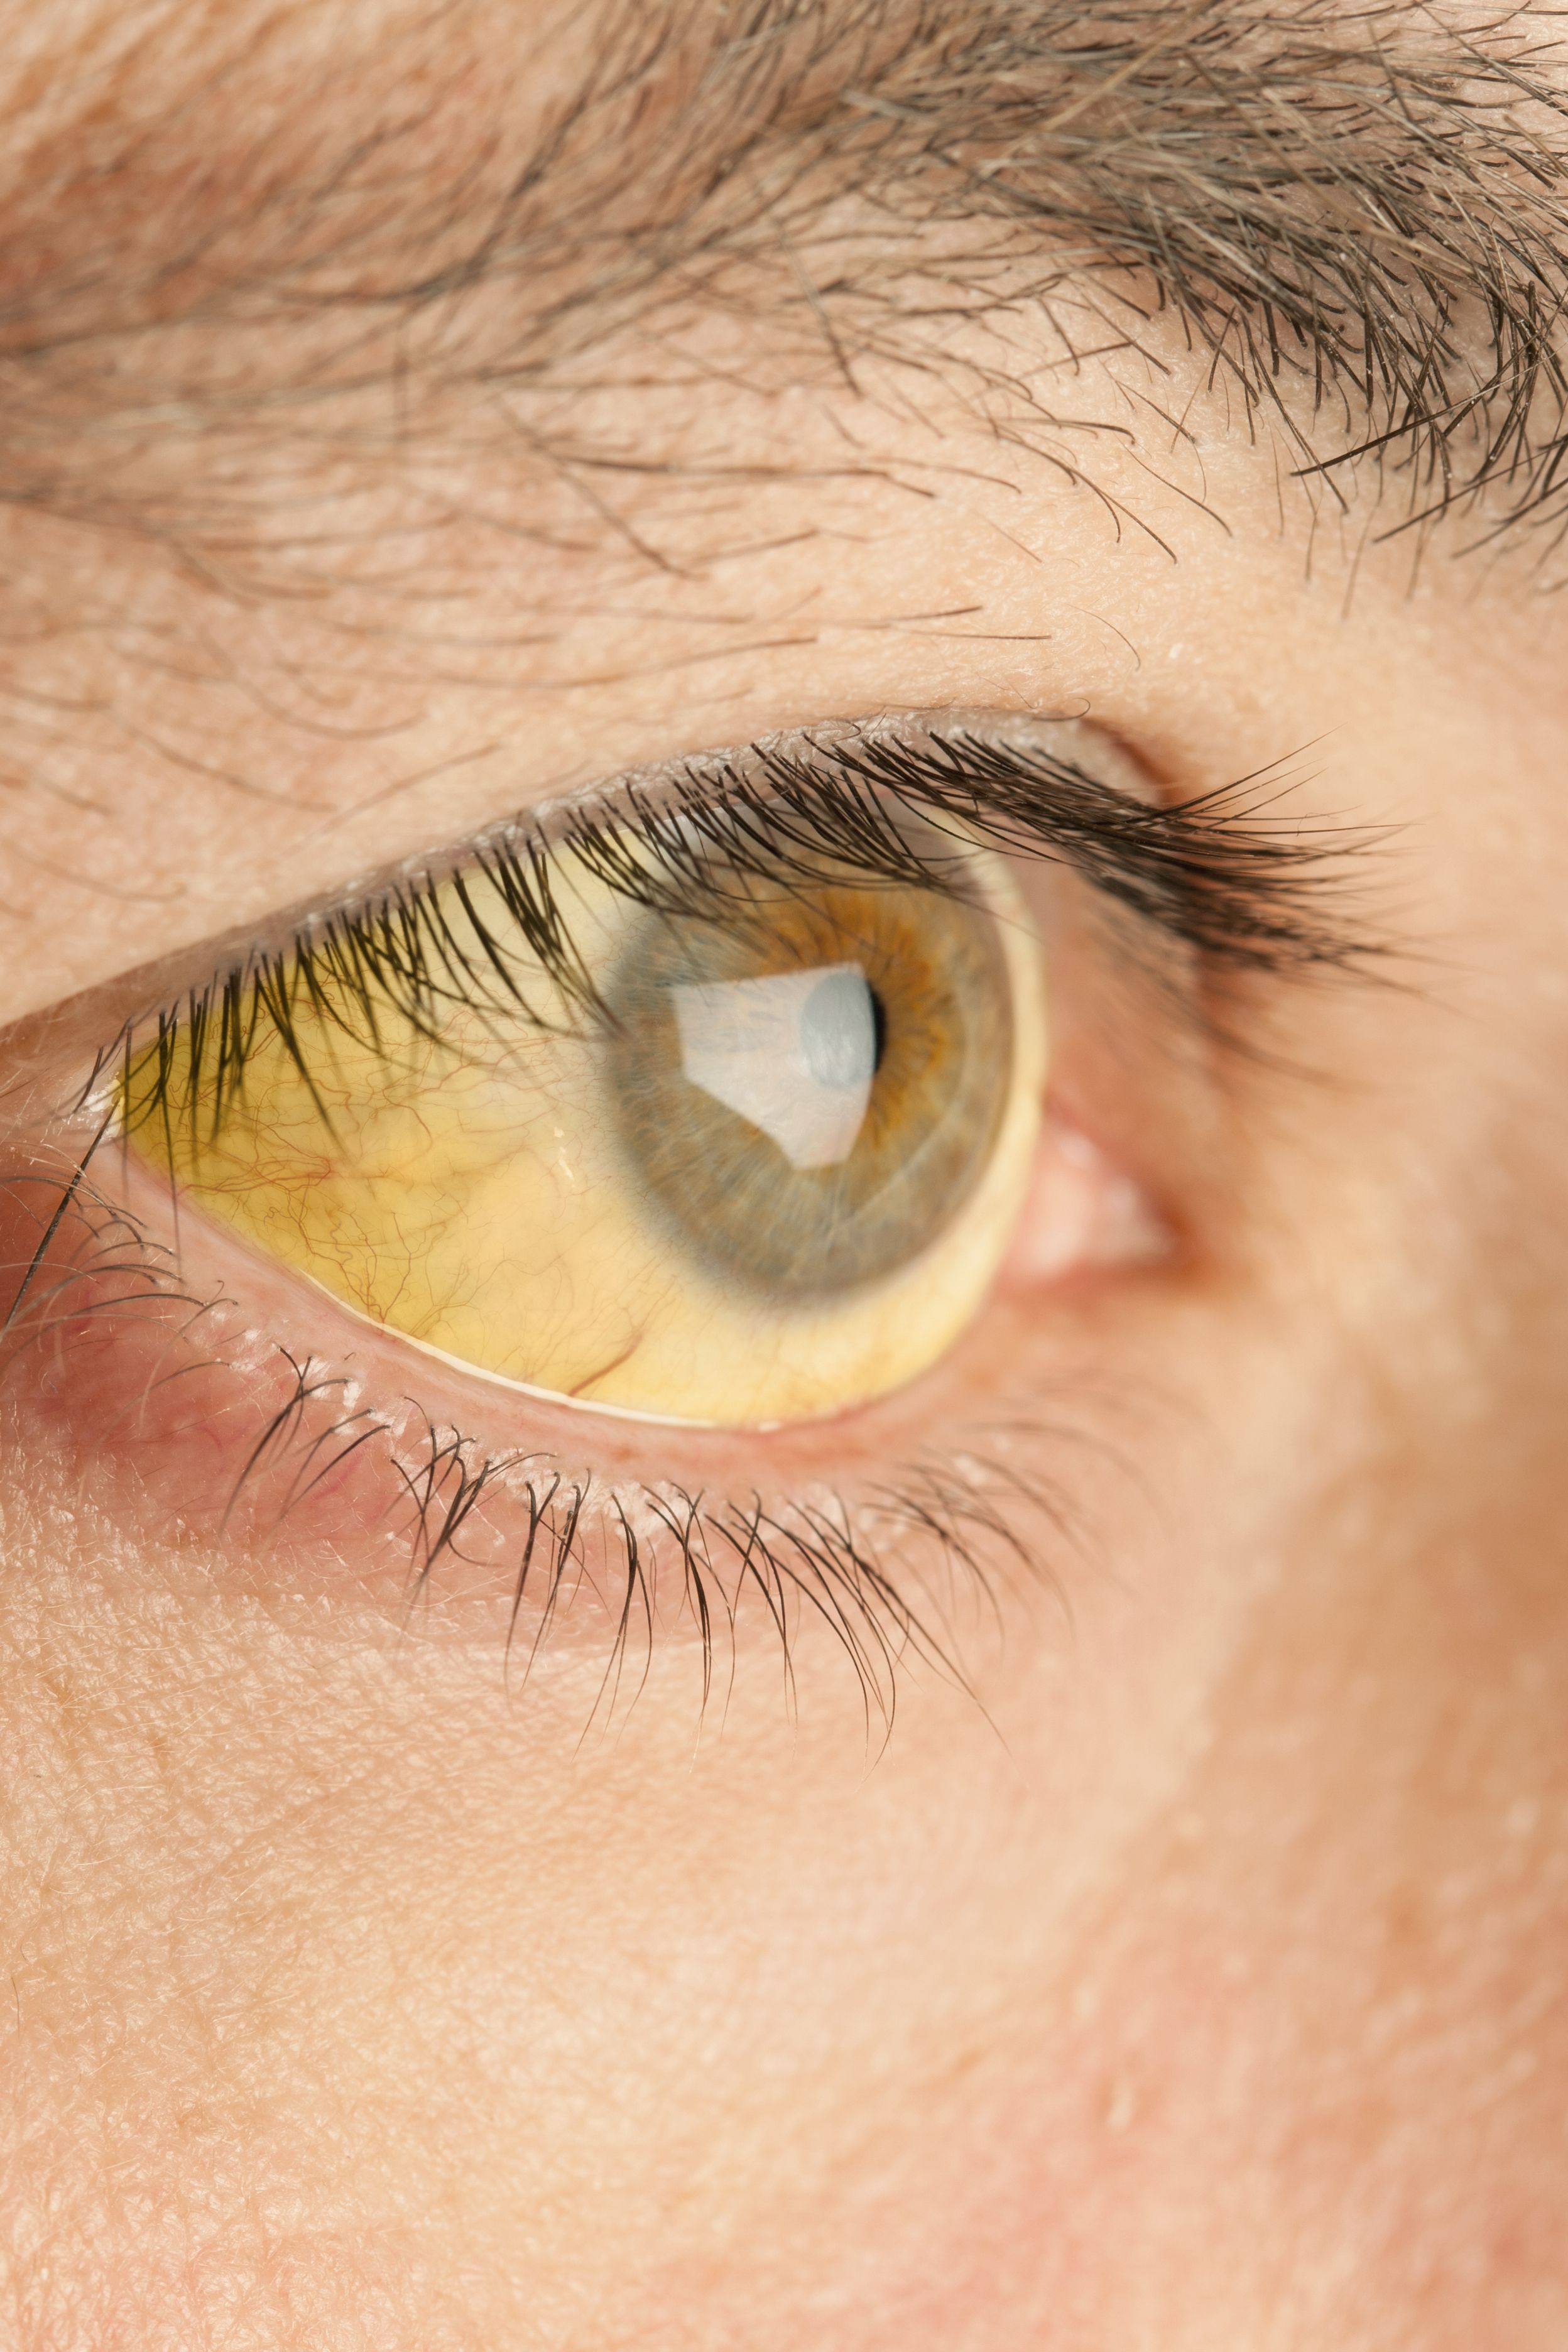 Watch Eye Health: The Warning Signs To Watch Out For video